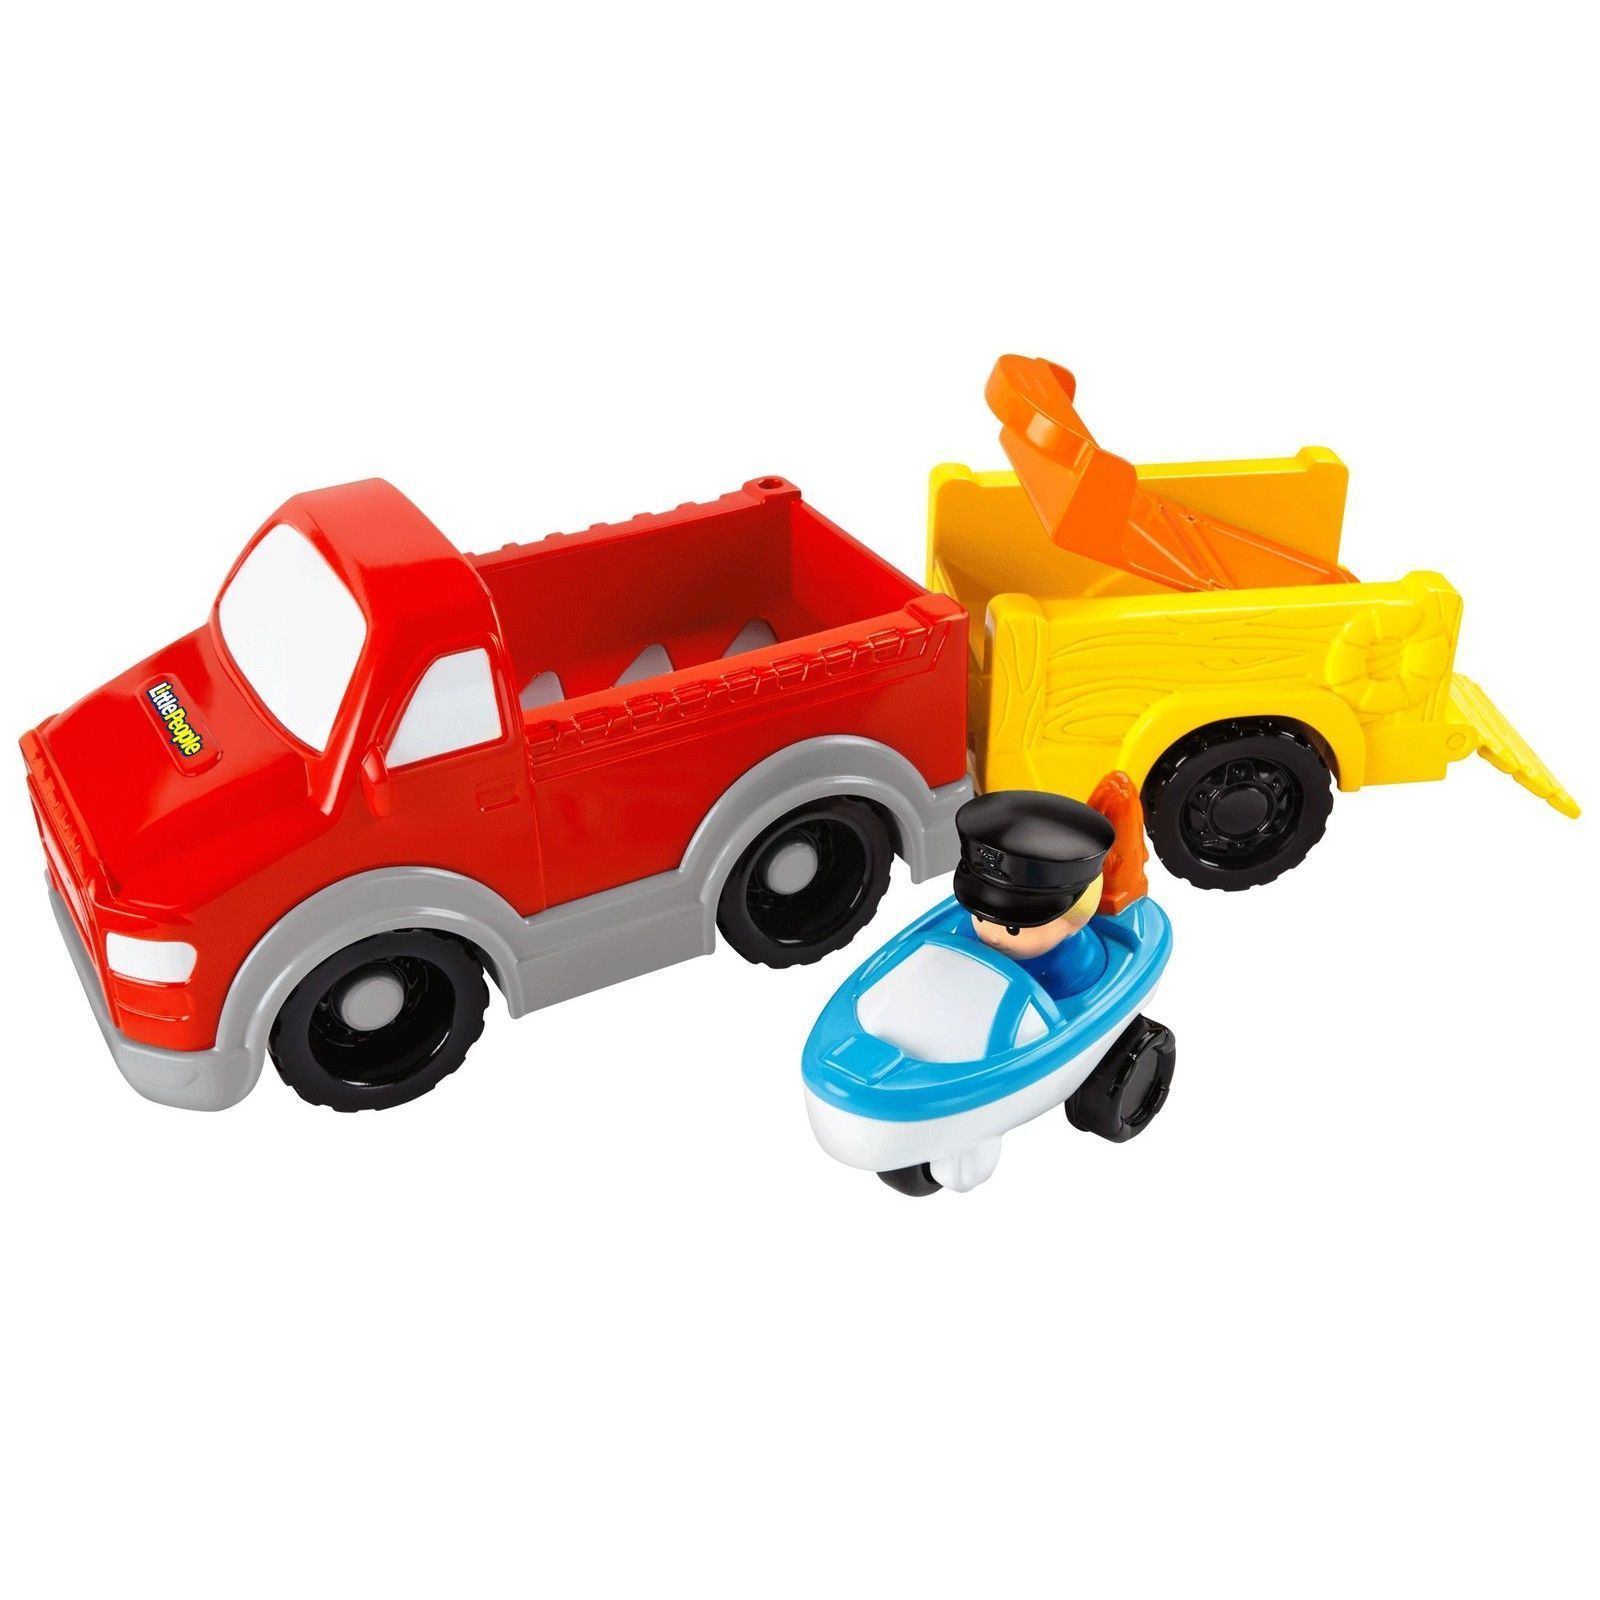 Little people car toys  Trailer Boat Prices  Boat  Pinterest  Boats and Trailers